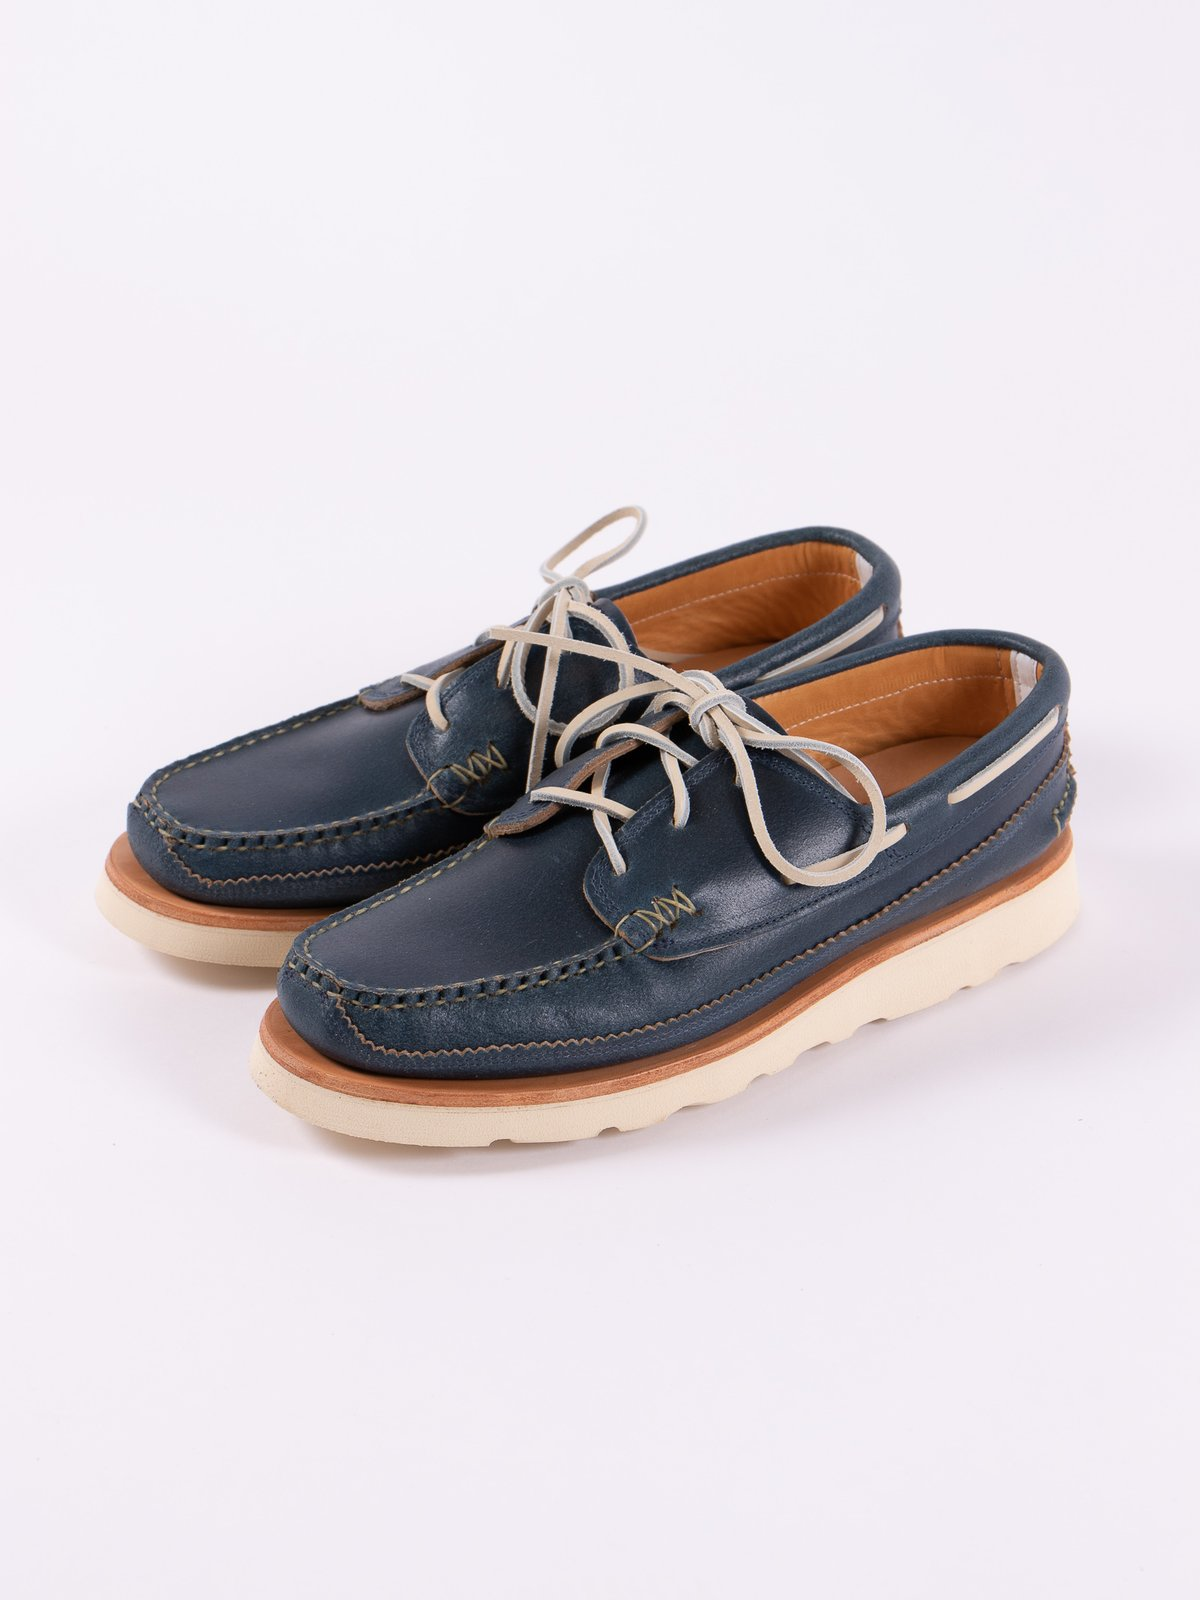 Wax Blue Boat Shoe Exclusive - Image 2